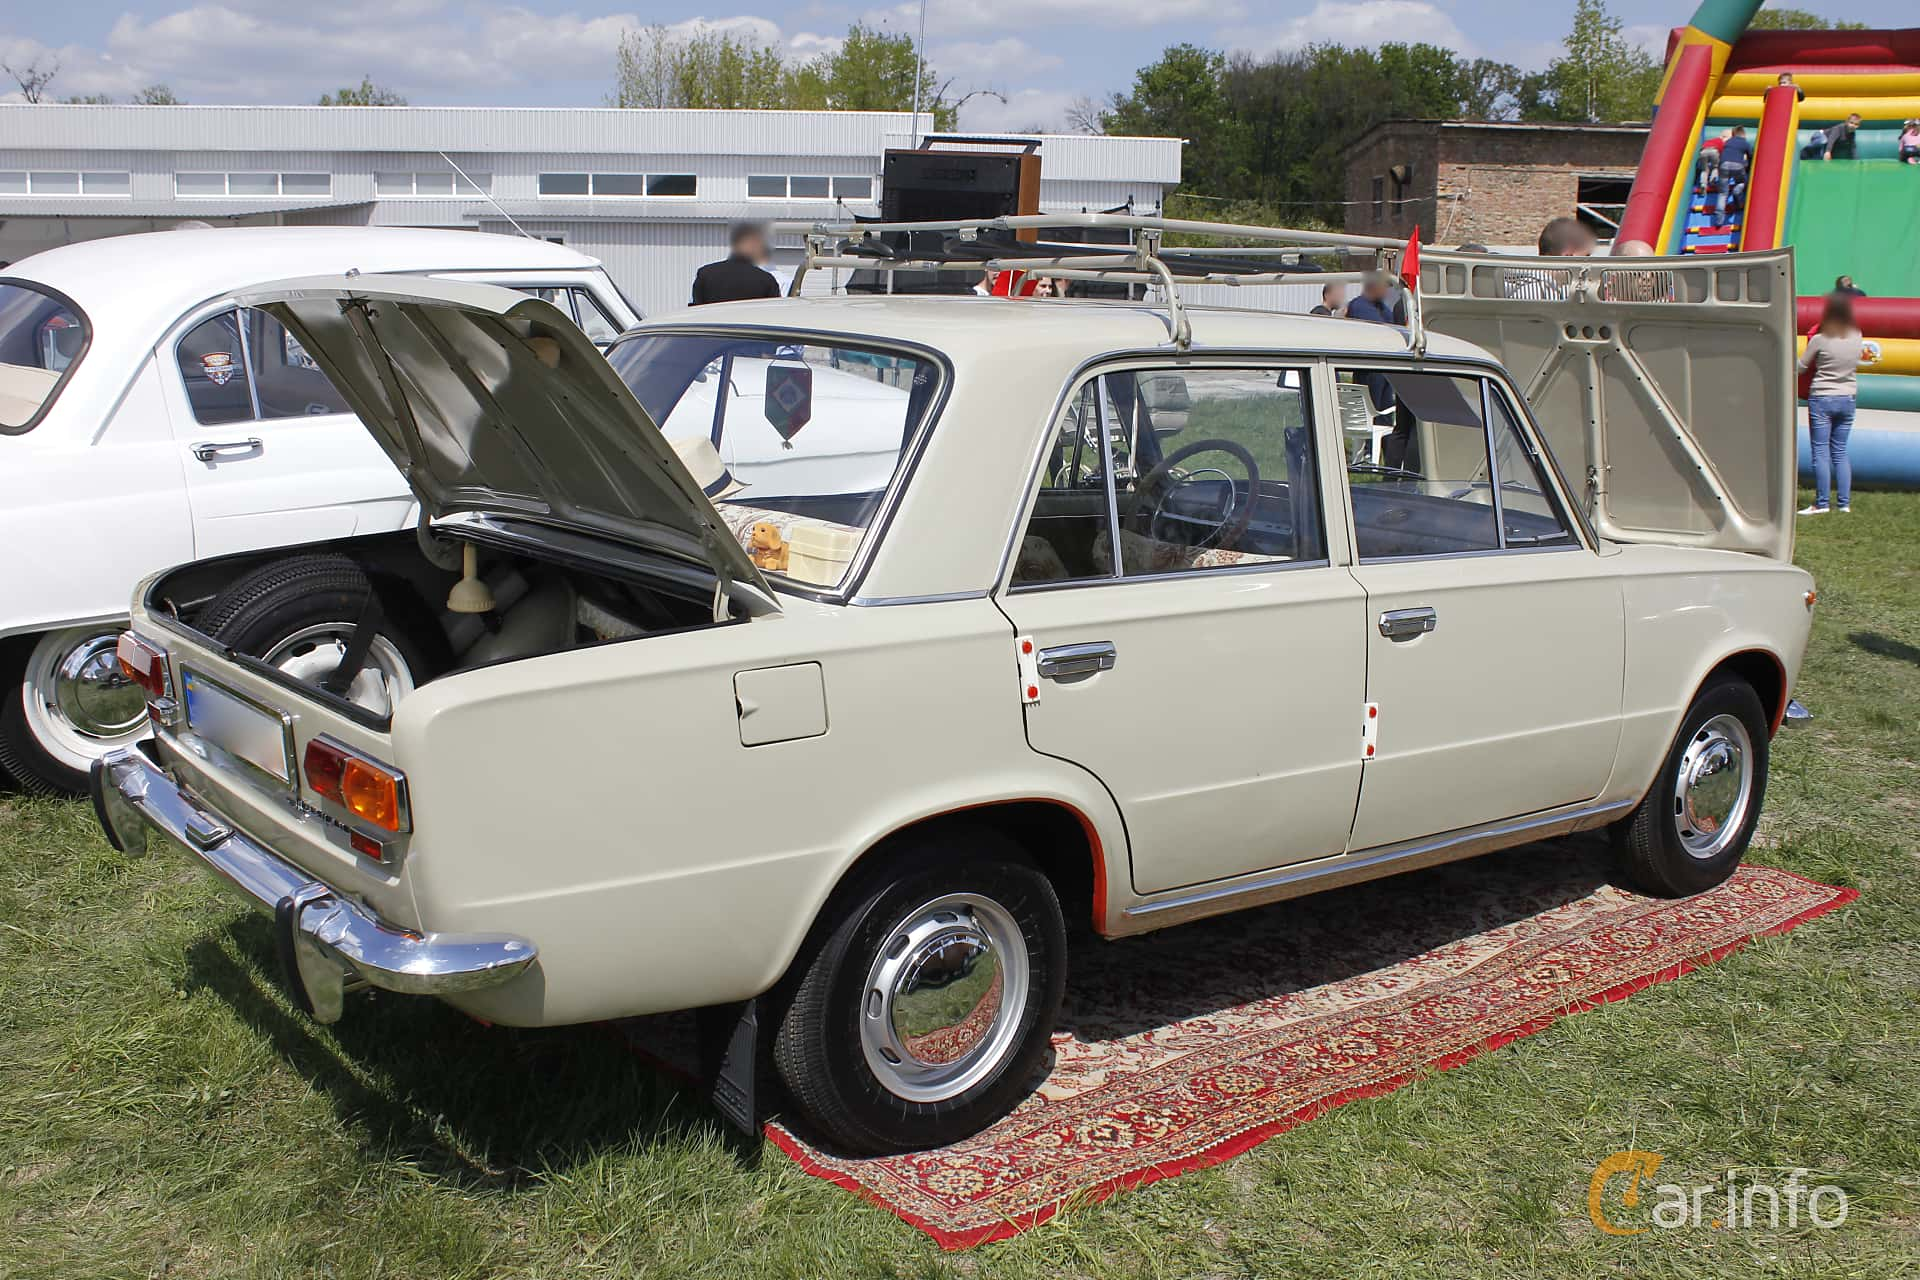 VAZ VAZ-21013 1.2 Manual, 63hp, 1972 at Old Car Land no.1 2018